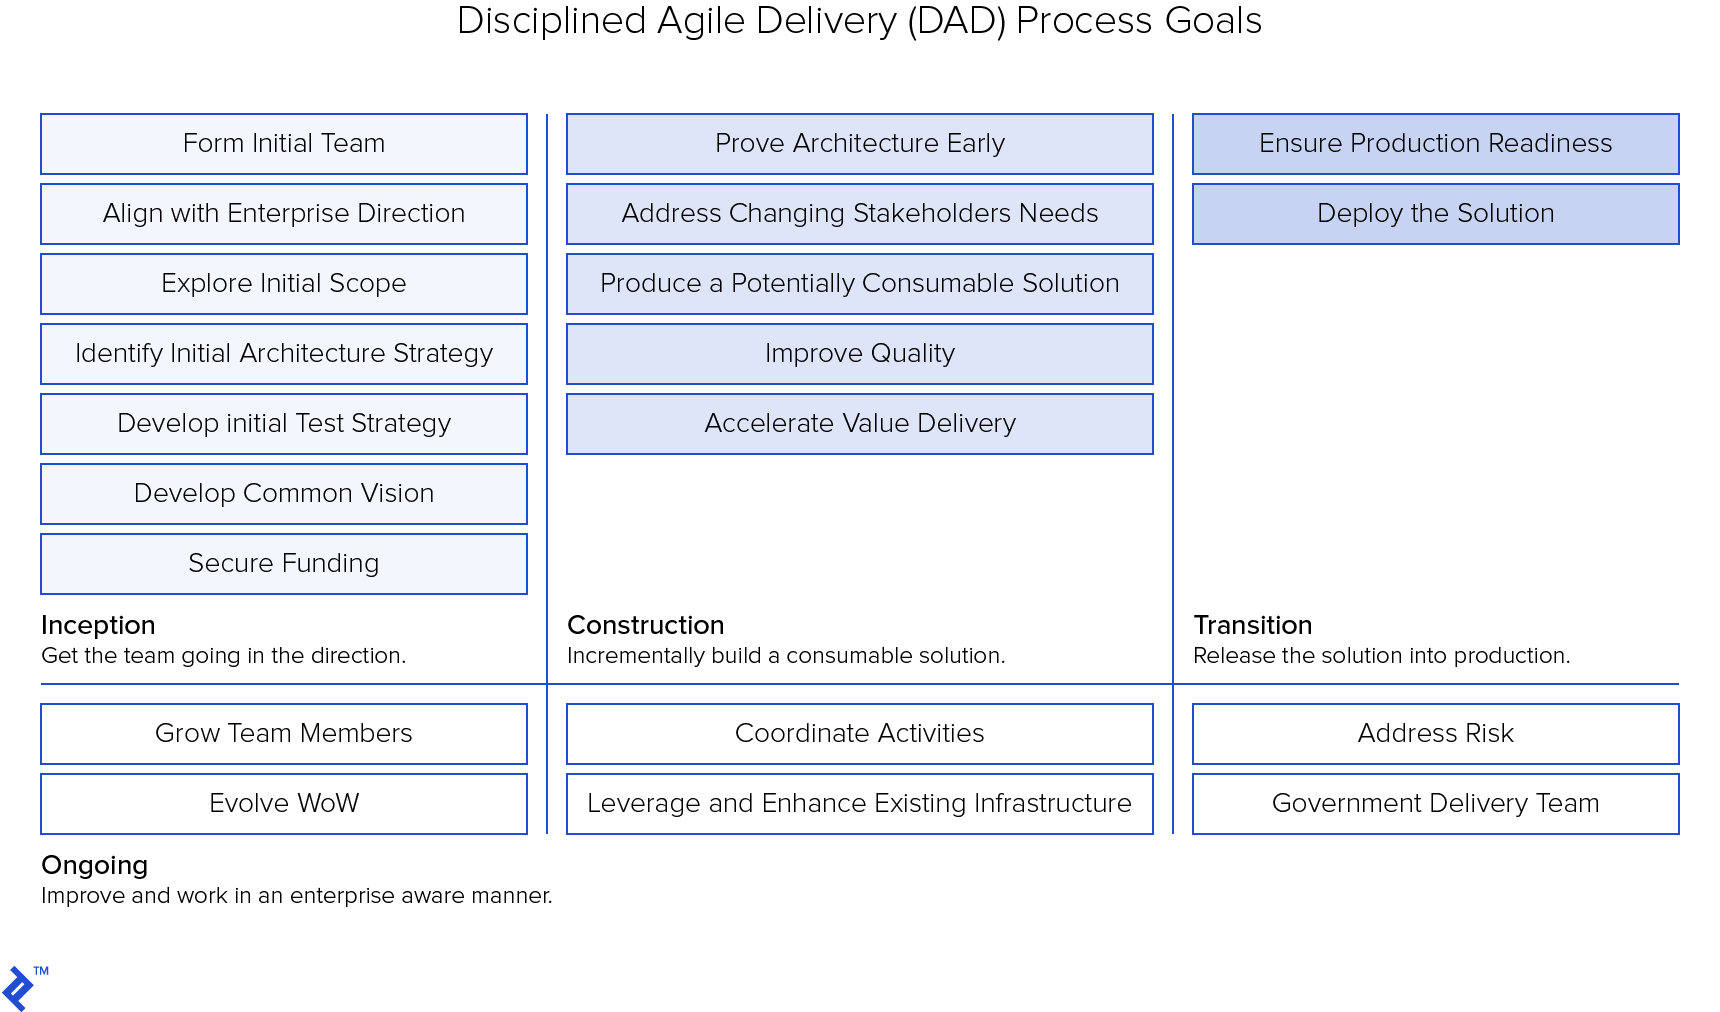 Disciplined agile delivery (DAD) Process Goals